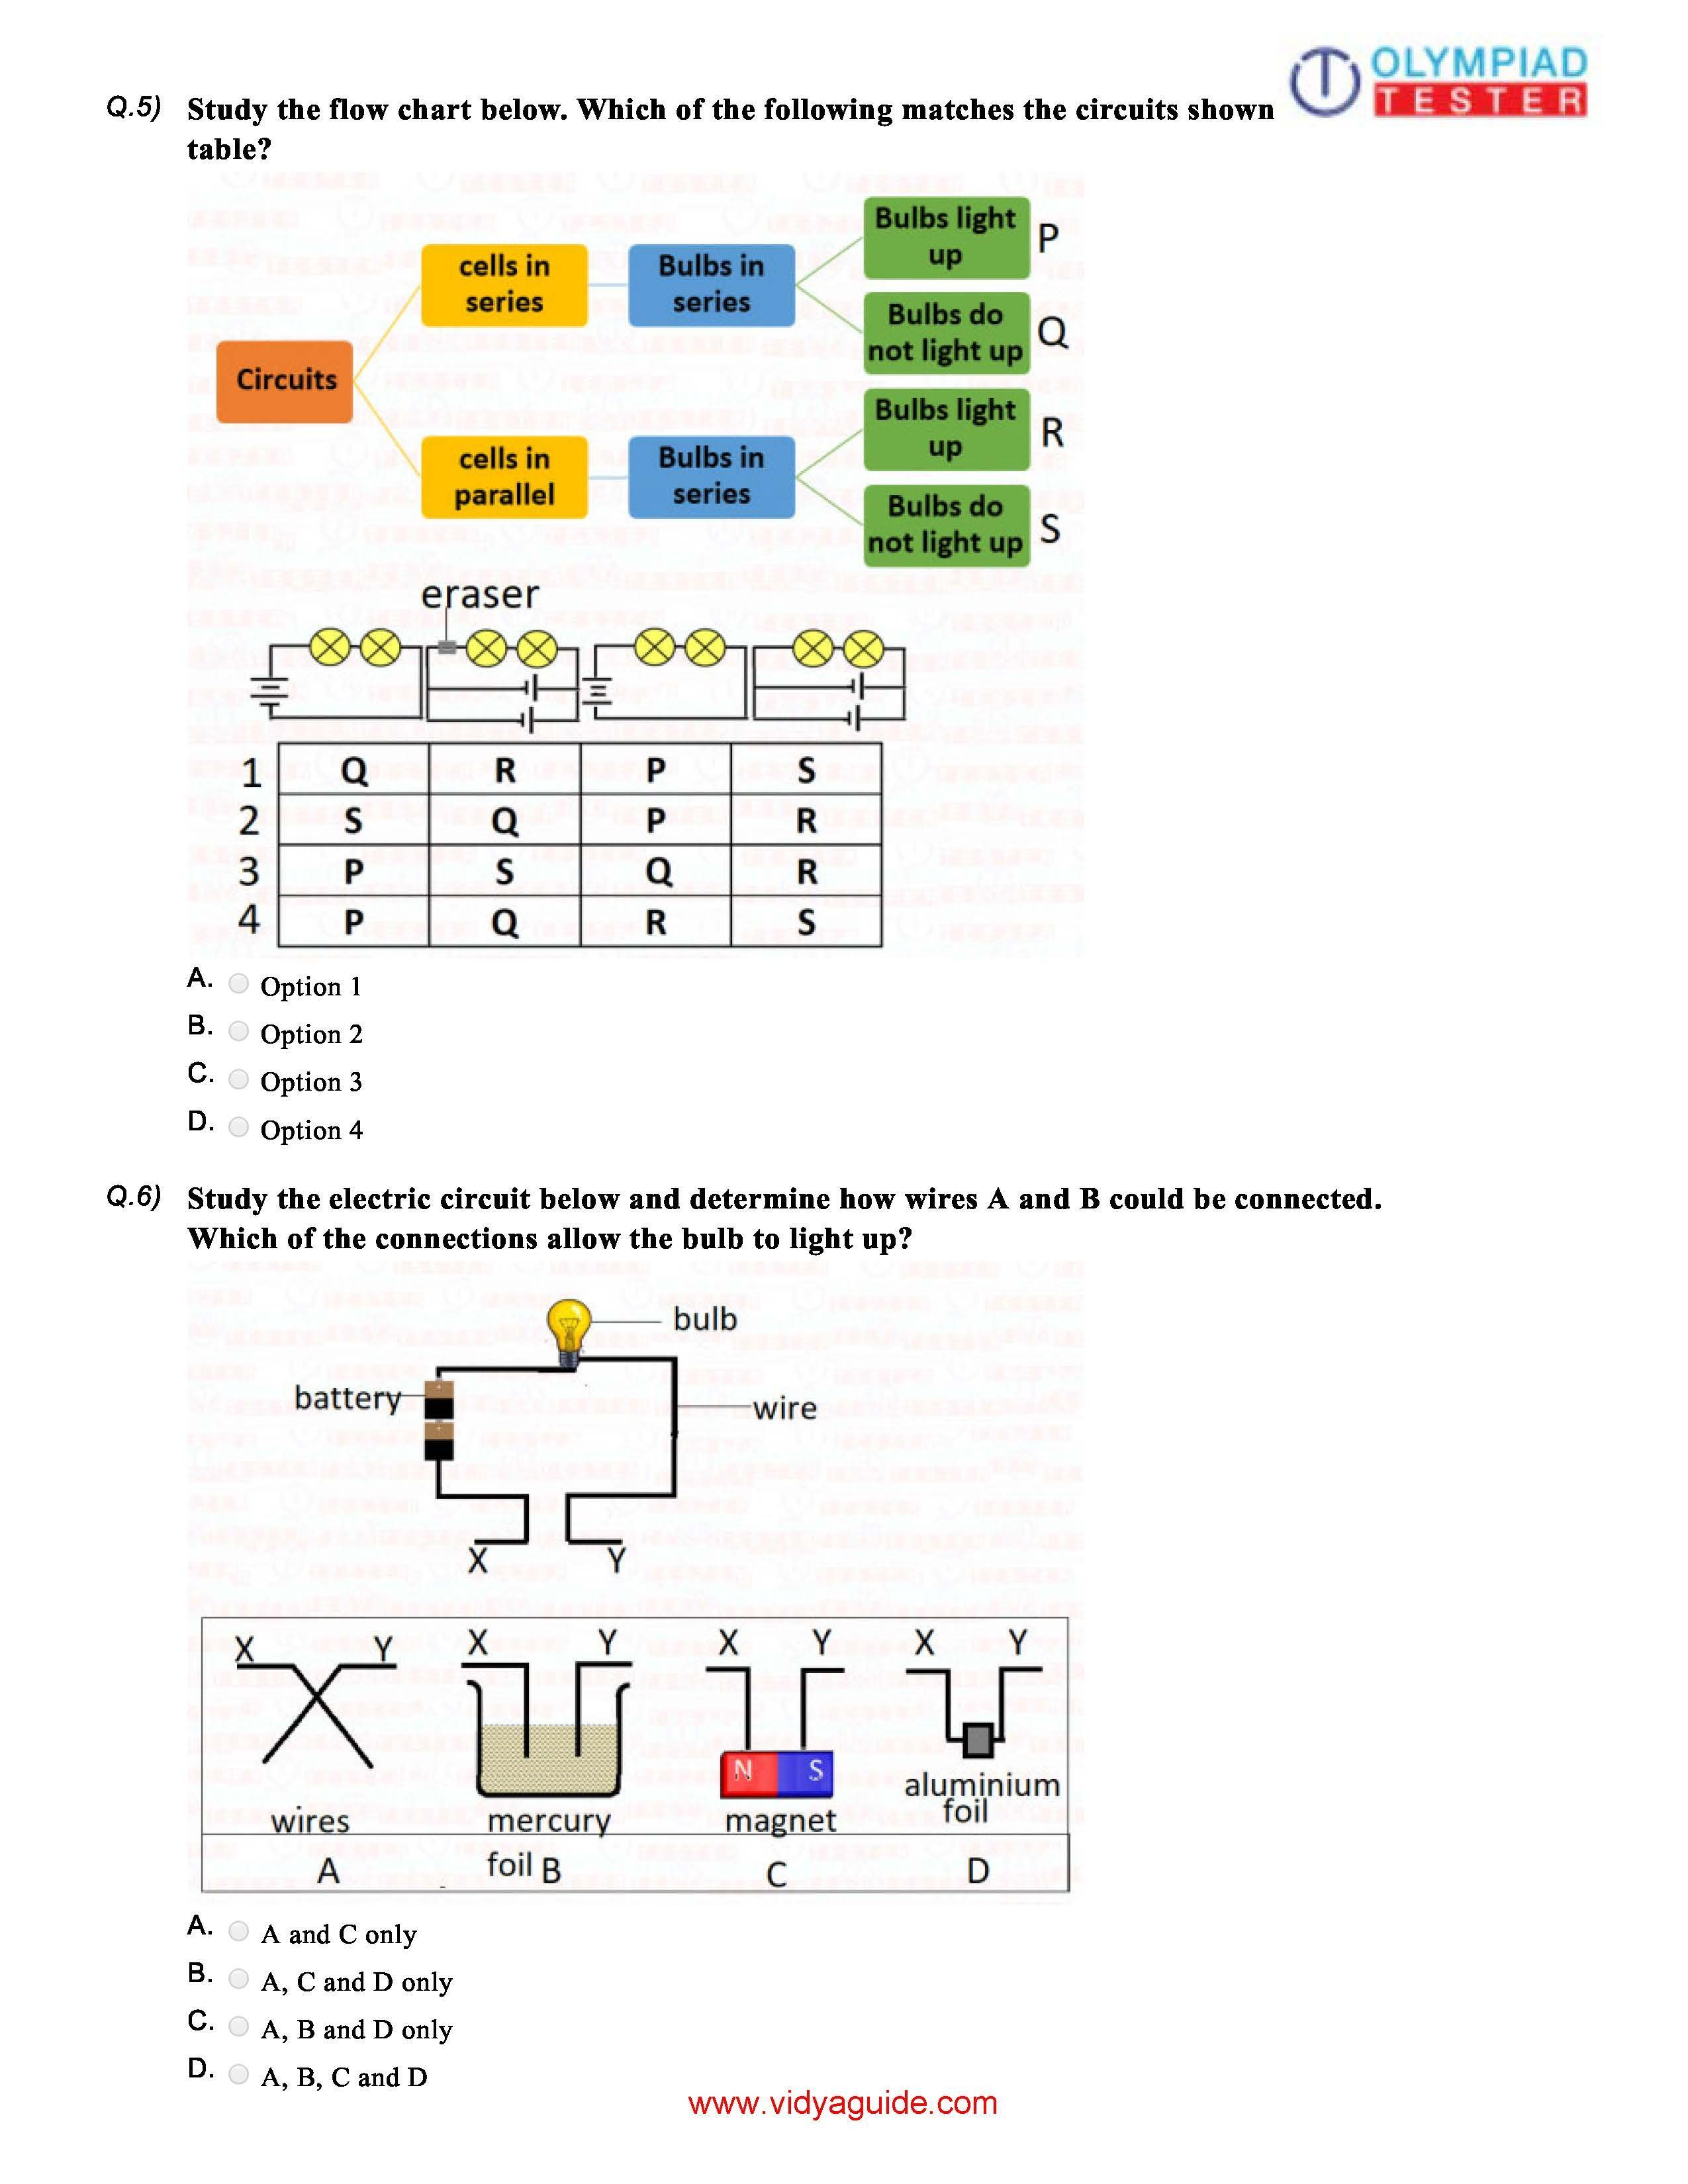 download 12 cbse science class 6 sample papers on electricity and questions year 6 electrical diagrams 2 year 6 circuit questions year 6 [ 2550 x 3300 Pixel ]